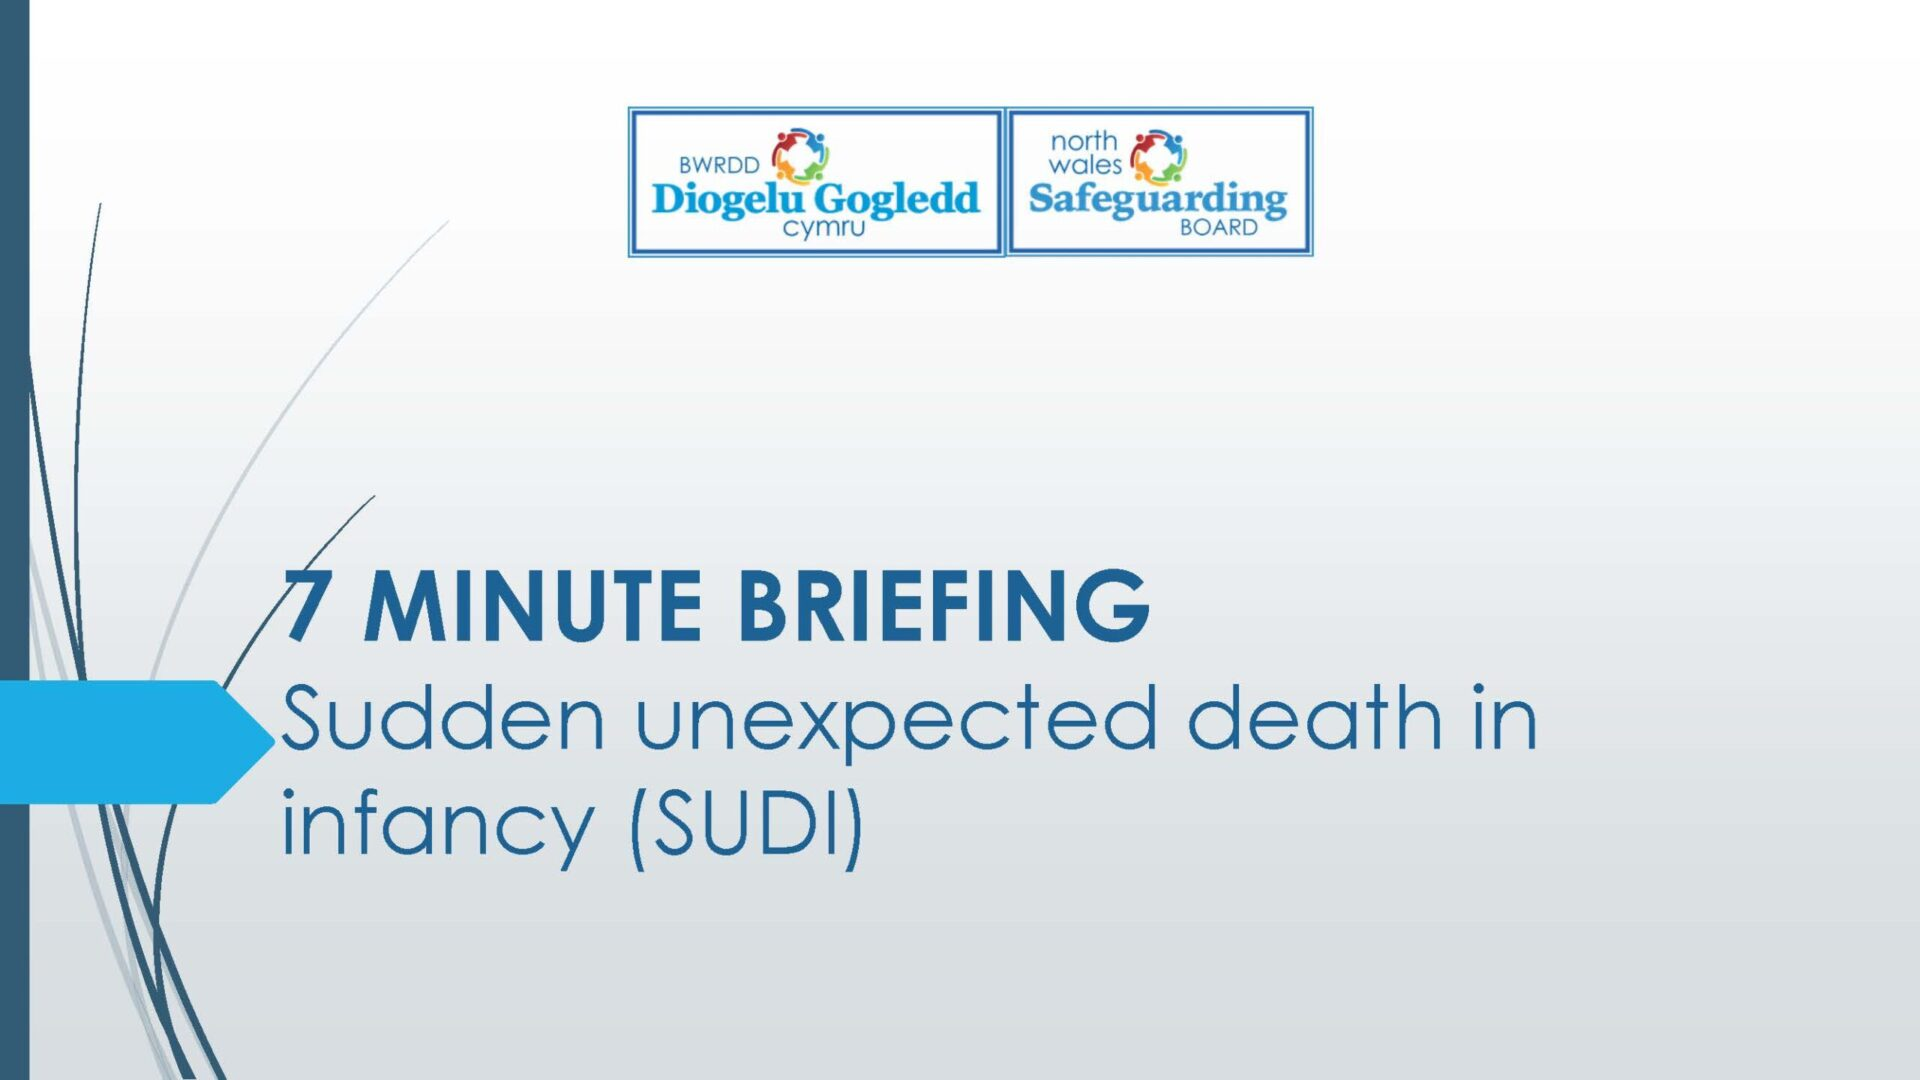 Sudden unexpected death in infancy